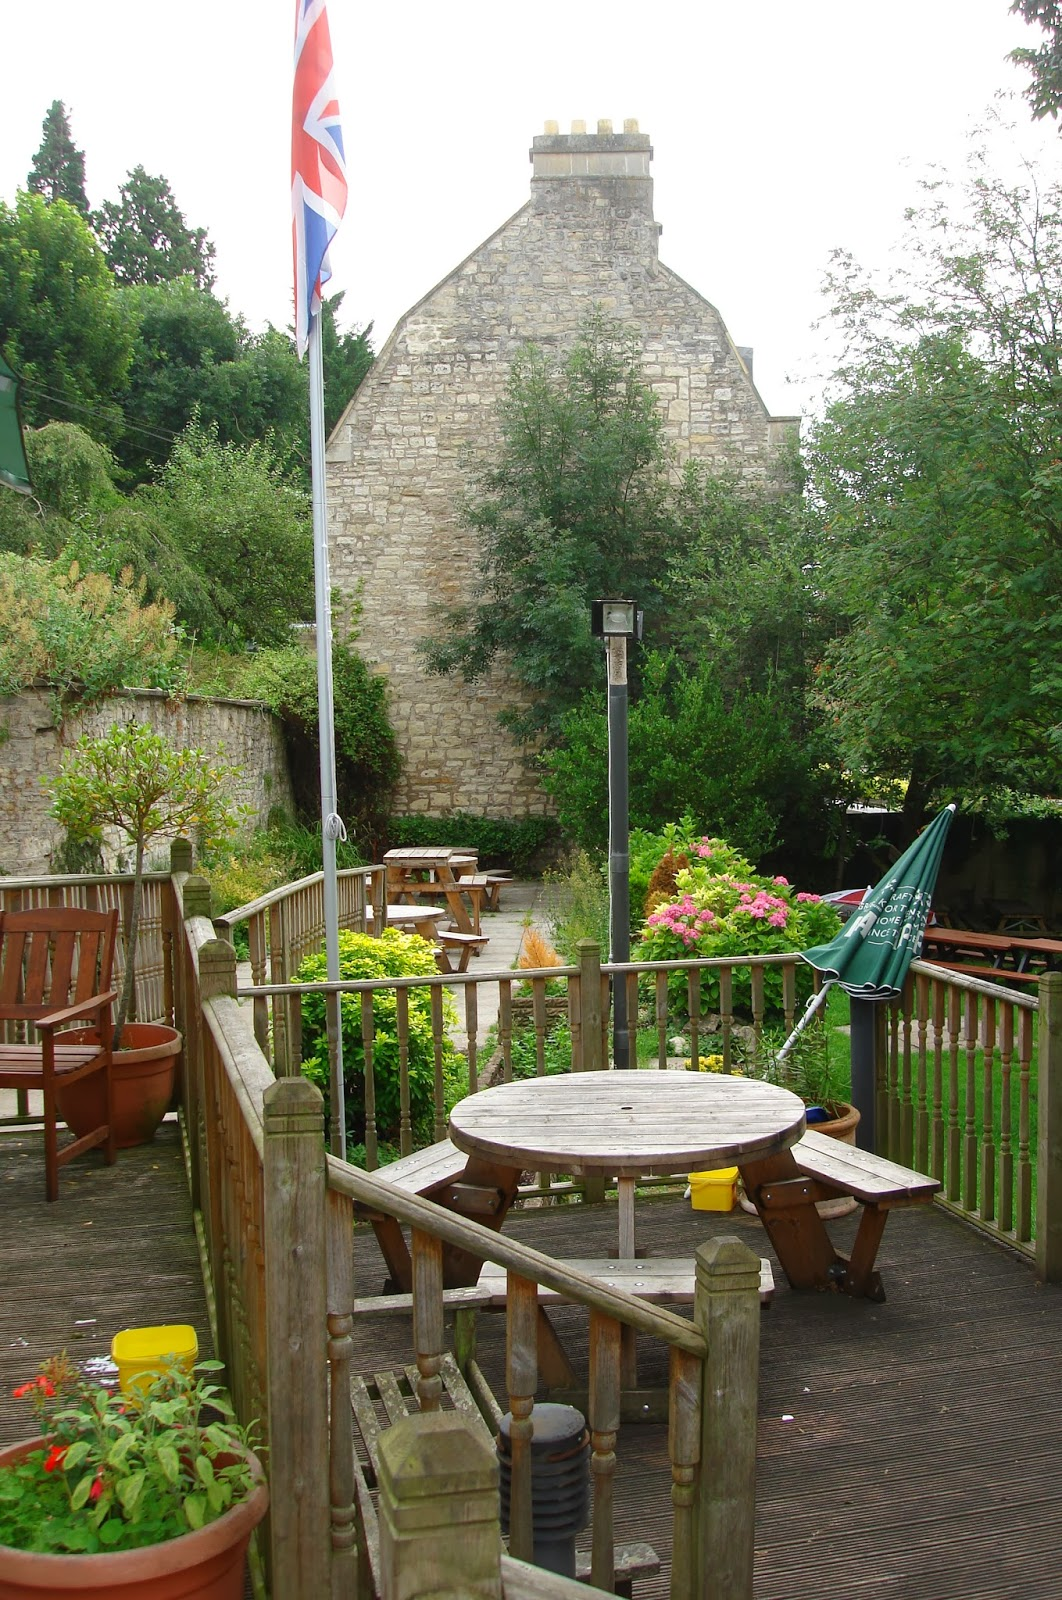 Old Crown Pub, garden, Weston, Bath, UK